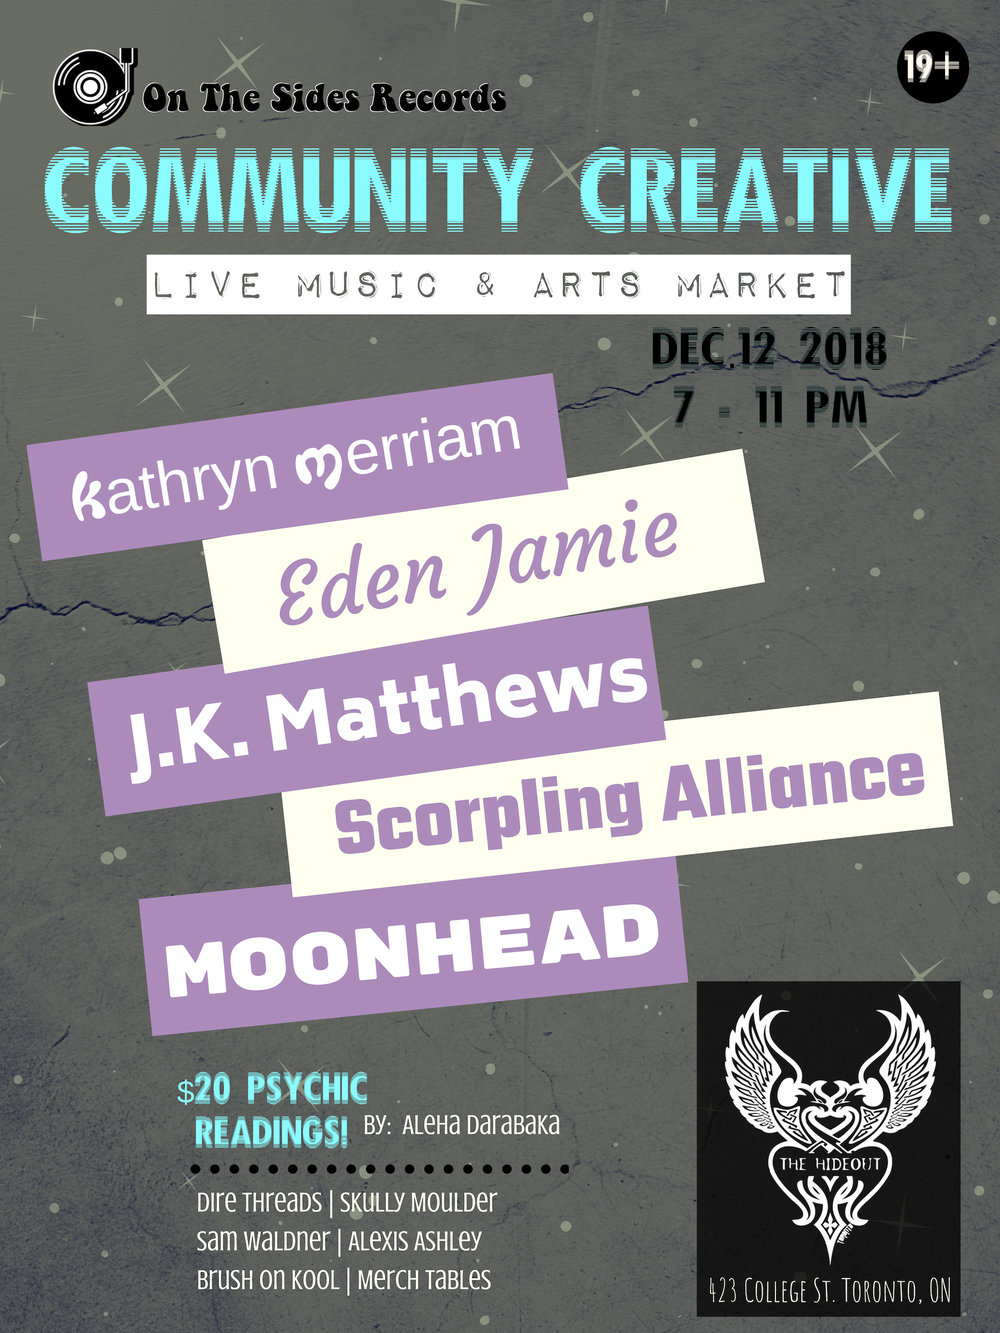 "On The Sides Records presents: Community Creative: Live Music & Arts Market.  Jump start the holidays:  Join the community for our 1st Live Music and Local Art showcase, Hosted at The Hideout, in Toronto.  We are proud to share an event that supports the inclusivity of ALL local artists! Community  Creative is a place for everyone to inspire and be inspired by  expressing their talents and supporting those of others.  Each month different performers and vendors will be put into the spotlight. We  encourage artists/performers of all kinds to submit their work for a  chance to be in the spotlight at future Community Creative's.  - THIS EVENT IS 19+  Our performers this month include:  Kathryn Merriam (@kathrynmerriam)   Eden Jamie (@edenjamiea) ""With  heart tearing, soul bearing lyrics, and tunes that transcend genre,  Eden Jamie fuses her honest poetry with melodies to match - like a hot  pot of alternative music for the soul.""  J.K. Matthews (@j.k.matthews)  ""J.K. Matthews mixes elements of Alternative, Blues and RnB to form unique soundscapes for story driven songs.""  Scorpling Alliance (@scorplingalliance)  ""The  female duo dubs their music as, Theatrical Space Rock. You've been  blasted by a laser beam into a collective of past, present and  futuristic sound waves reminiscent of times spent bathing in star dust!""  Moonhead (@moonheadtheband)  ""An original funk, pop band from Toronto.""   -  Our vendors this month are:  Aleha Darabaka  - Offering readings ""Multi-disciplinary  Belly Dancer, performer, healer and oracle reader based out of Toronto.  Aleha embodies Goddess energy through her love of performance,  modelling, oracle reading, colour and sound therapy. She has studied  varied styles of Belly Dancing that she incorporates by fusing them all  into her own unique style. She's always challenging her creativity by  inventing new, original characters and costumes that she puts together  to give her audience a high theatrical and visual experience.""  Skully Moulder (@skullymoulder)  ""Handmade  Skull planters and skull candles made from repurposed wax. For the guys  and ghouls who like to add a little darkness to their decor.""  Dire Threads (@dire_threads)  ""An independent Toronto brand dedicated to creating apparel covered in strange creatures and distorted designs.""  Alexis Ashley (@alexisashleyart)  ""Toronto  based self-taught abstract resin artist inspired by nature and music.  Using a combination of acrylic paints, resin, epoxy and mixed media on  wood panels.""  Sam Waldner (@samfotosynthesis)  ""The art that  Sam Waldner creates immediately catches the eye as textured,  multidisciplinary, and layered. The pieces beg the viewer to look from  corner to corner, to examine every slope and spike of paint and colour,  as you never know what's hiding beneath. The work transforms  photographic images into three-dimensional works of art and is based on  the philosophy of integrating Jung's concept of the 'anima' as a way to  self-individuation. This is Waldner's journey of self-discovery and  connecting to the collective unconsciousness.""  -  On The  Sides Records will have a merch/info table at side stage. Our featured  item of the night is Mike Siracusa's 'Brush On Kool' famous musicians  hot sauce! No mild, no medium, just HOT! - these sell quick!  Come,  hang out, Charlie and see what the community has to offer!Right in the  middle of the holiday season - what a perfect time to get together and  celebrate!You may find some gift goodies for your family & friends  and there will probably be an elf or two walkin' around.  TICKETS : $10 + taxes & fees online / $15 (cash) at the door"